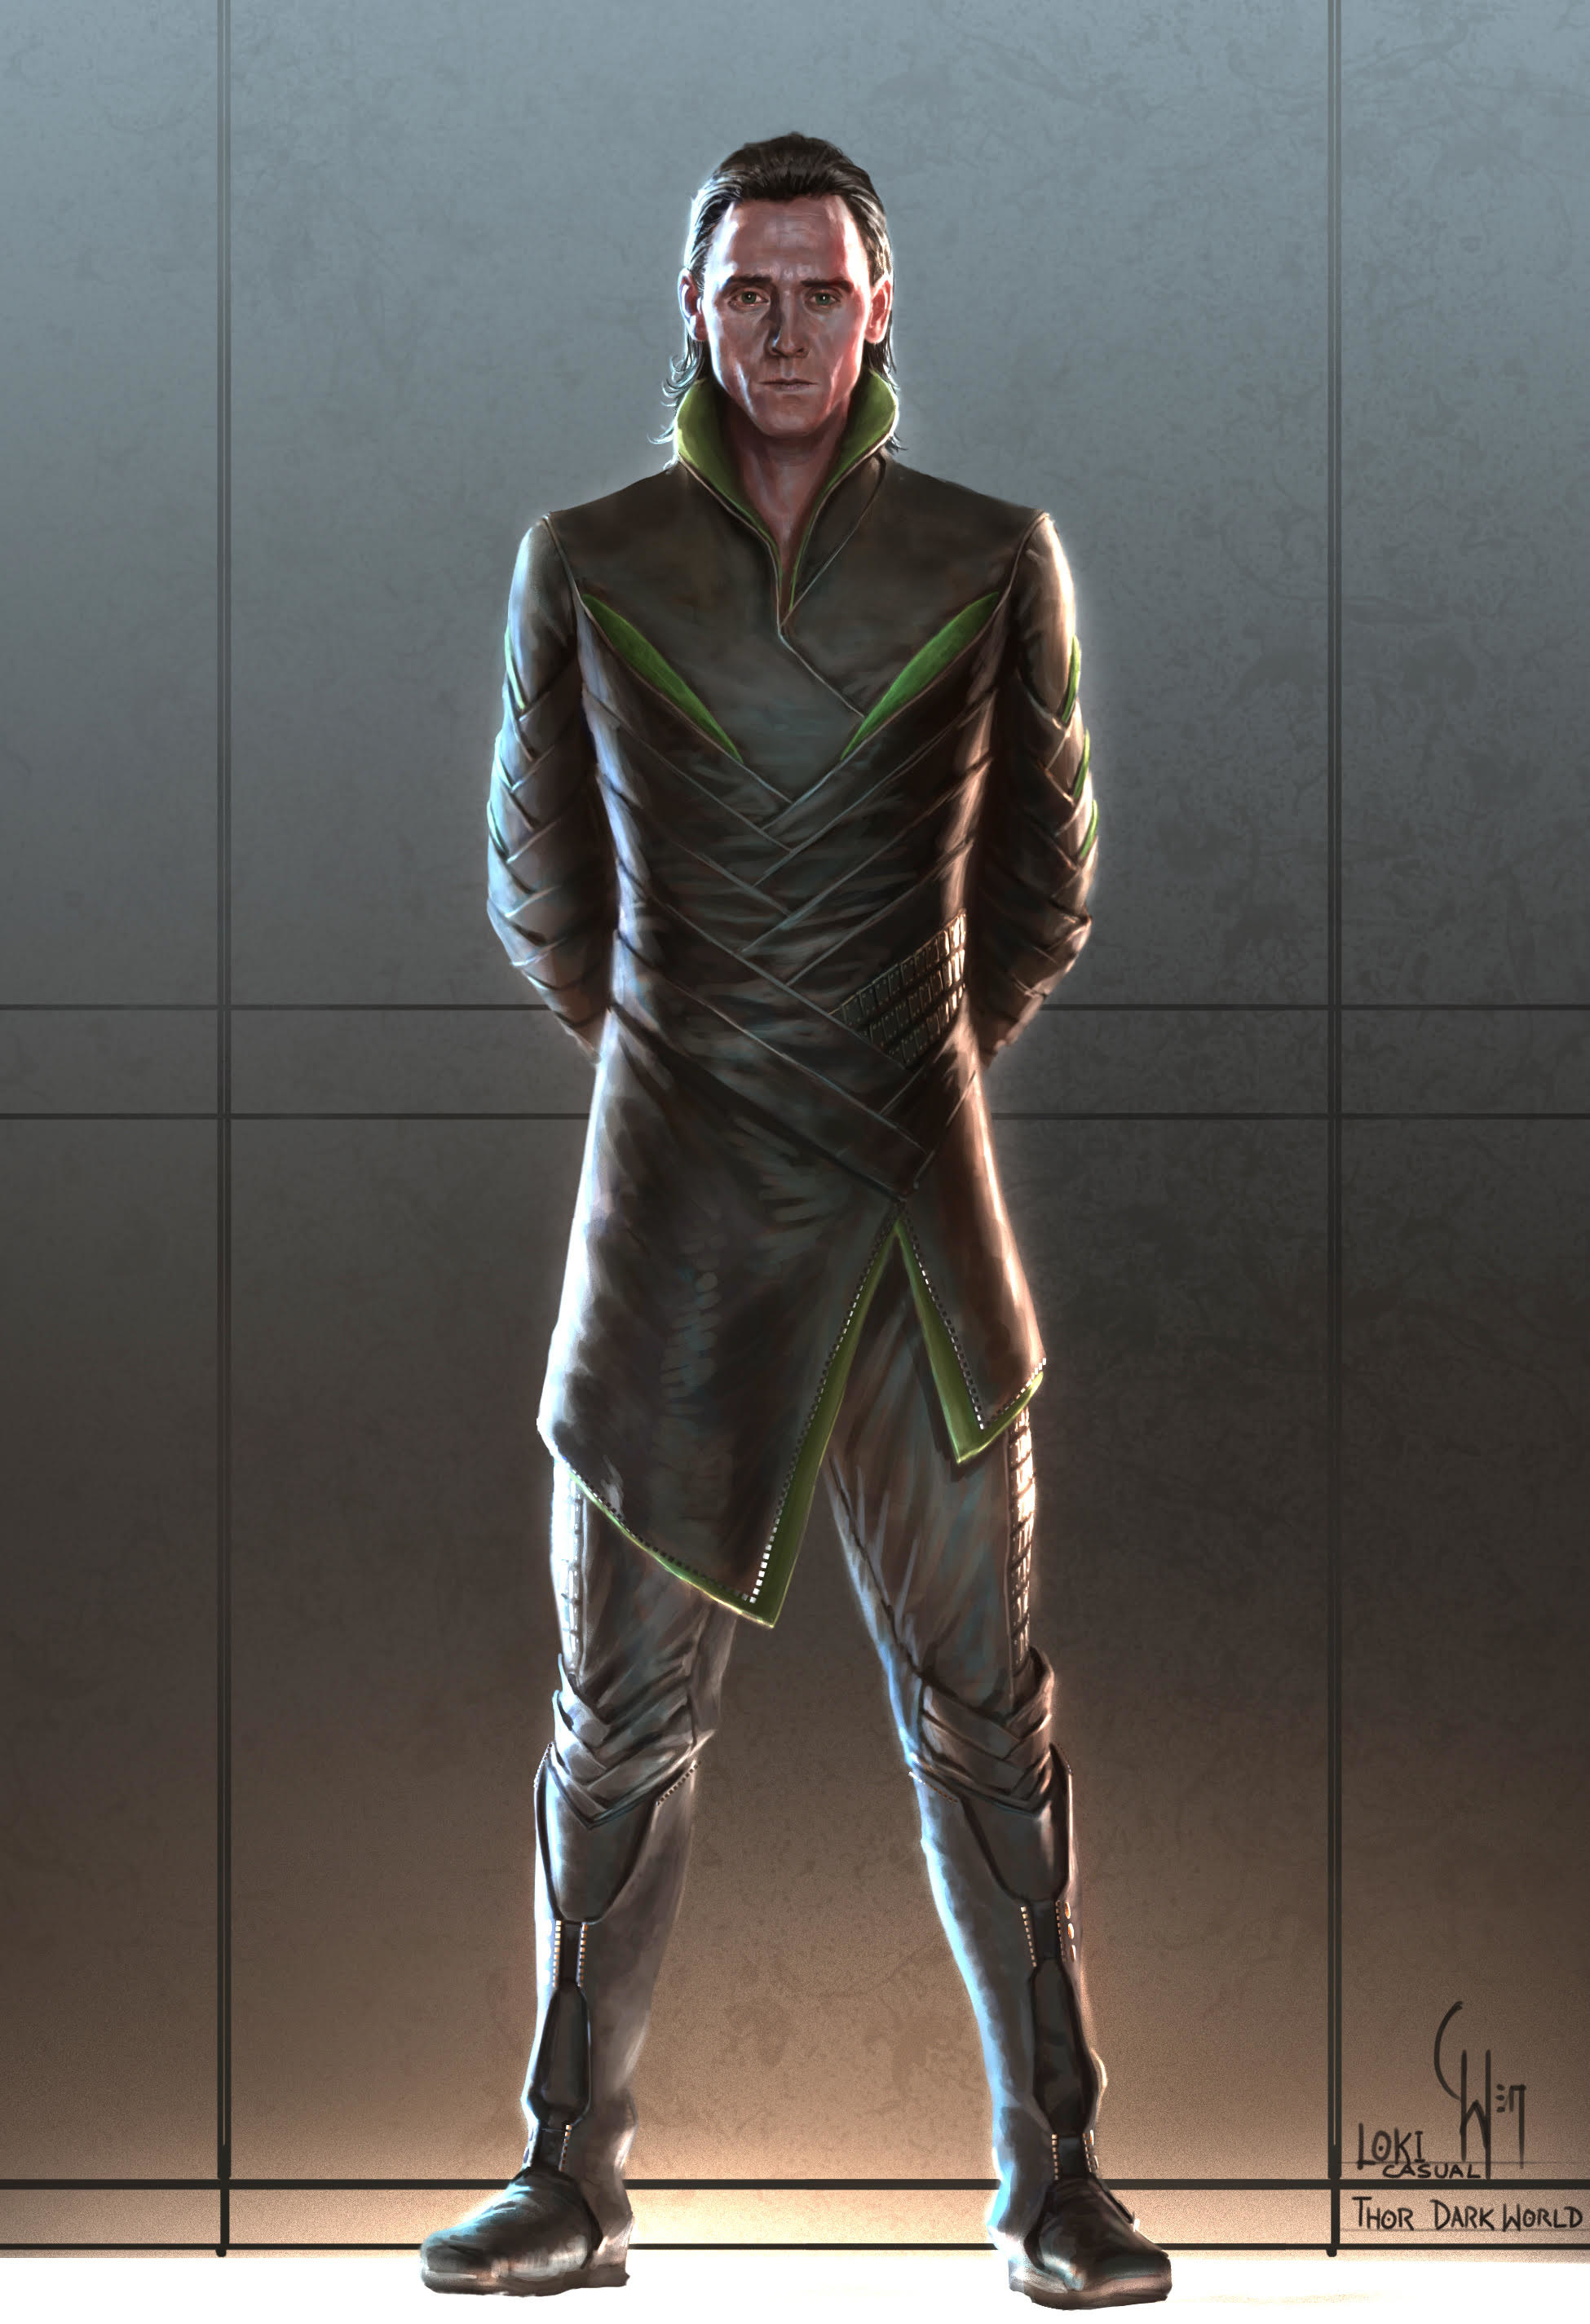 Illustration of Loki for Dark World where his outfit is made of leather and has almost an angular, braided design